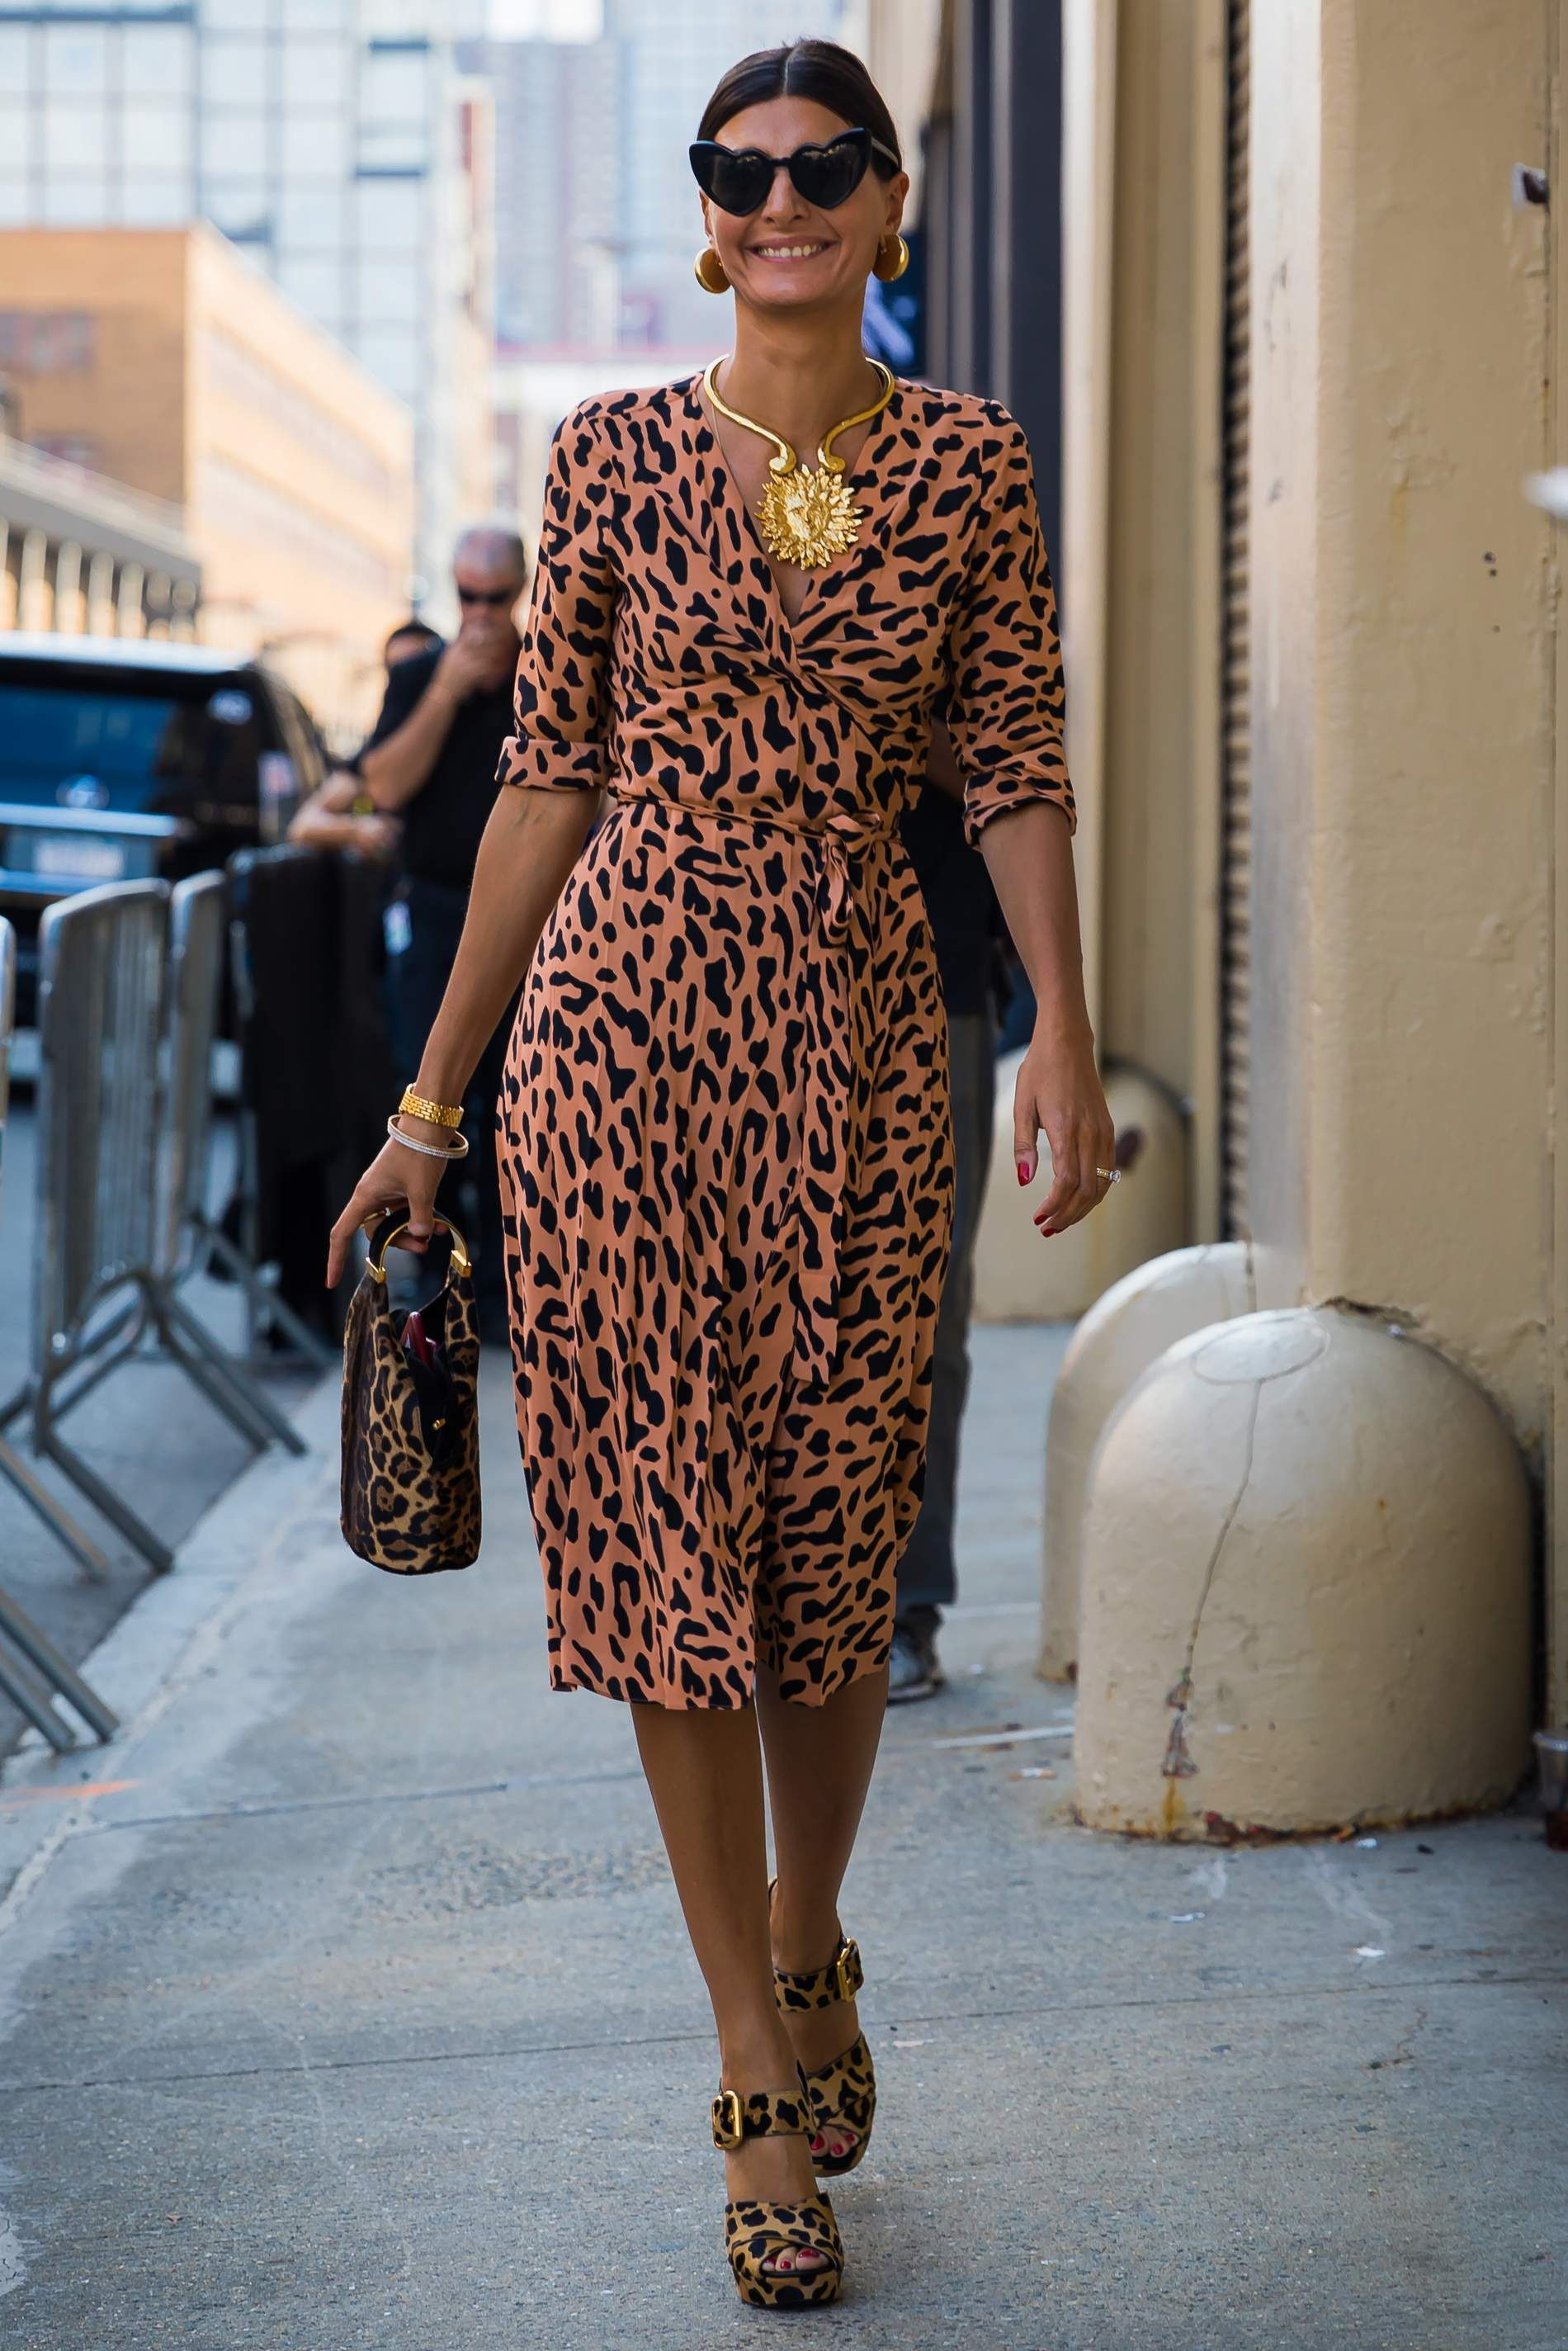 29592a688966 Animal Print: How To Wear These Classic Prints Like A Fashion Editor